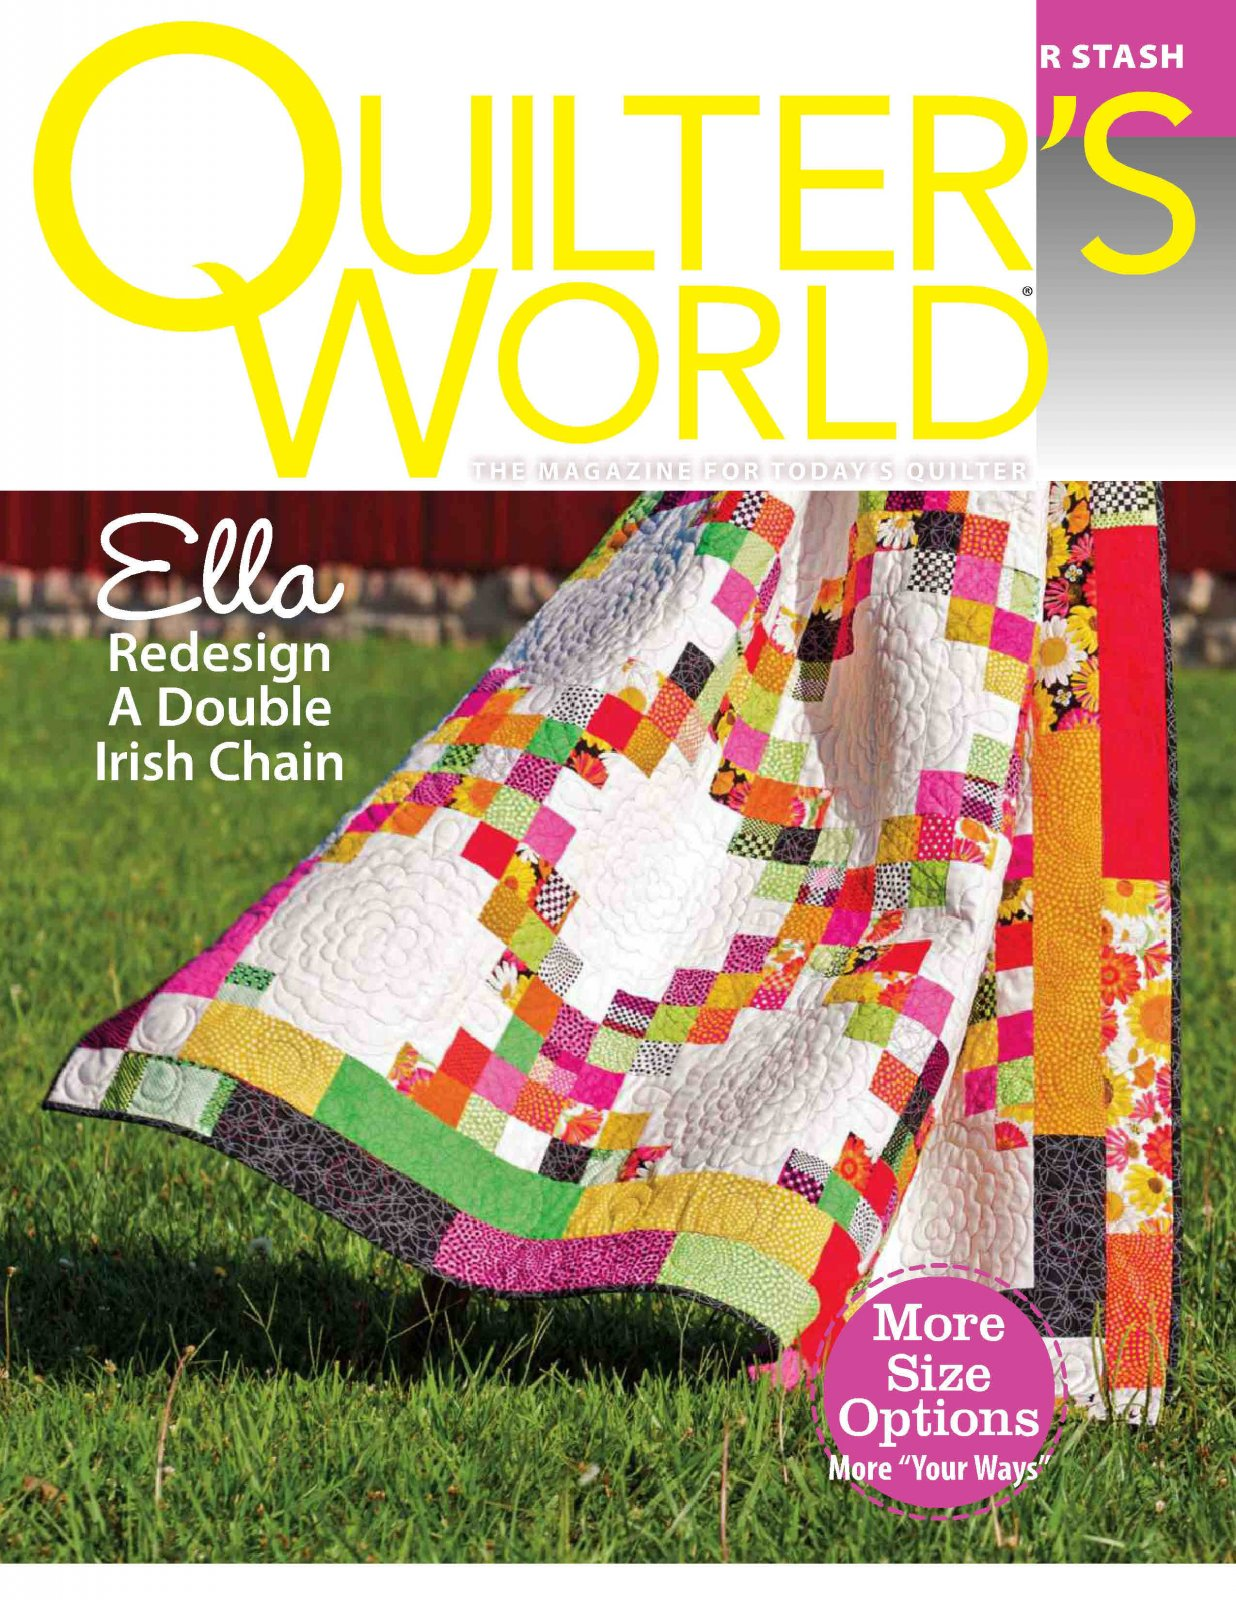 Quilter's World The Magazine For Today's Quilter Spring 2015 Volume 37 Issue 2